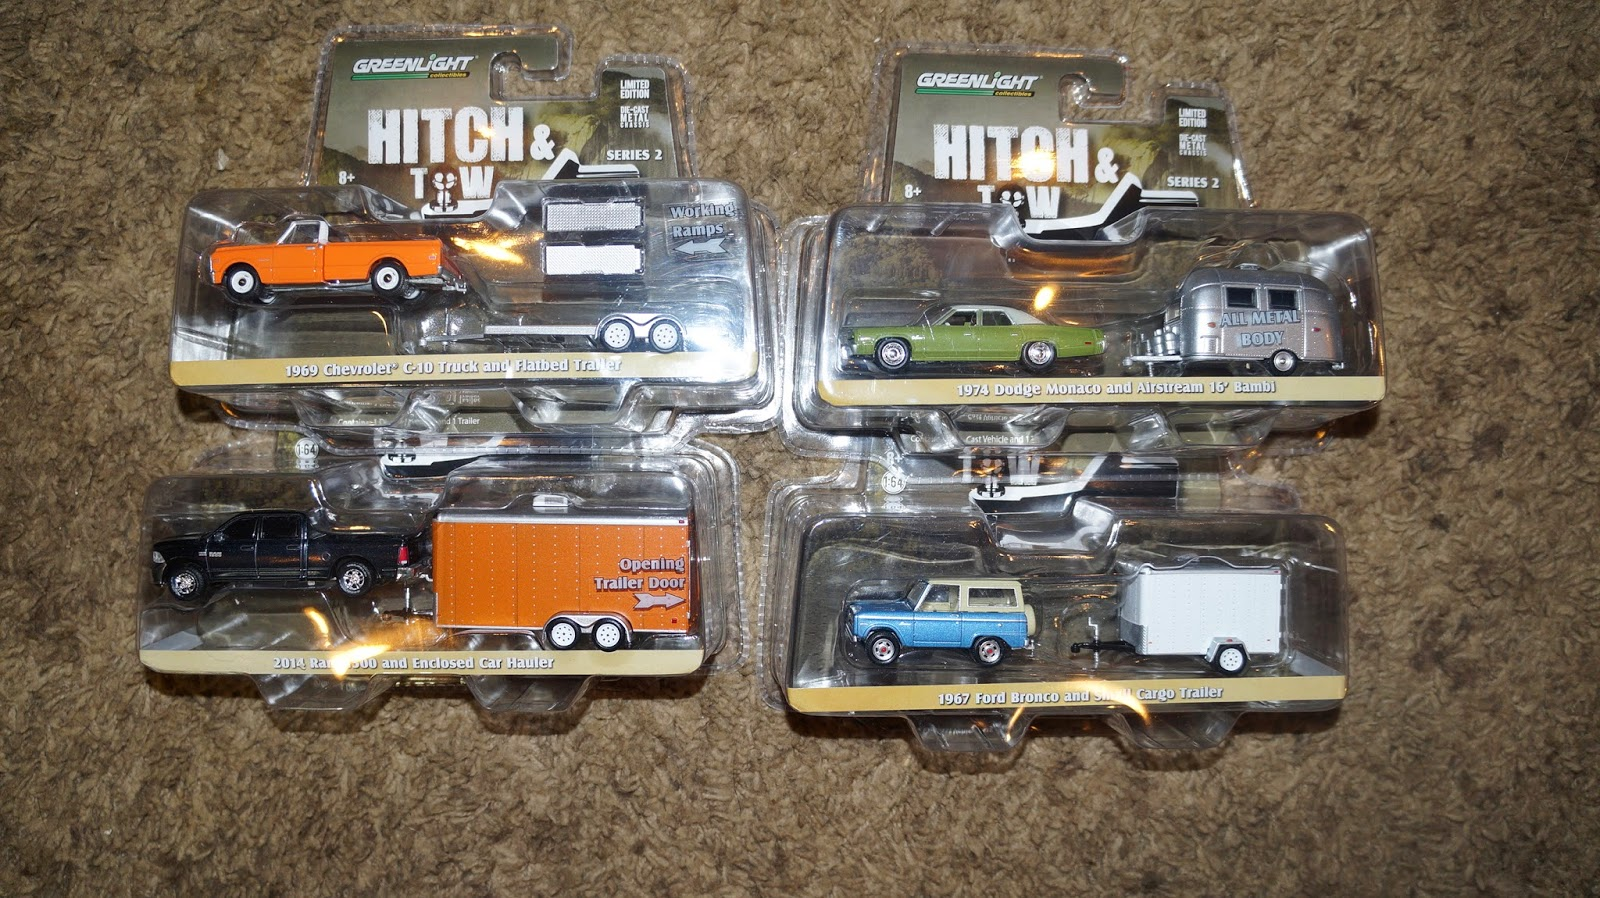 1 64 scale trucks and trailers - Greenlight 32020 1 64 Scale Hitch Tow Series 2 Complete Set Of 4 Dodge Monaco With Airstream Ford Bronco 4x4 Chevy Truck And Dodge Ram All With